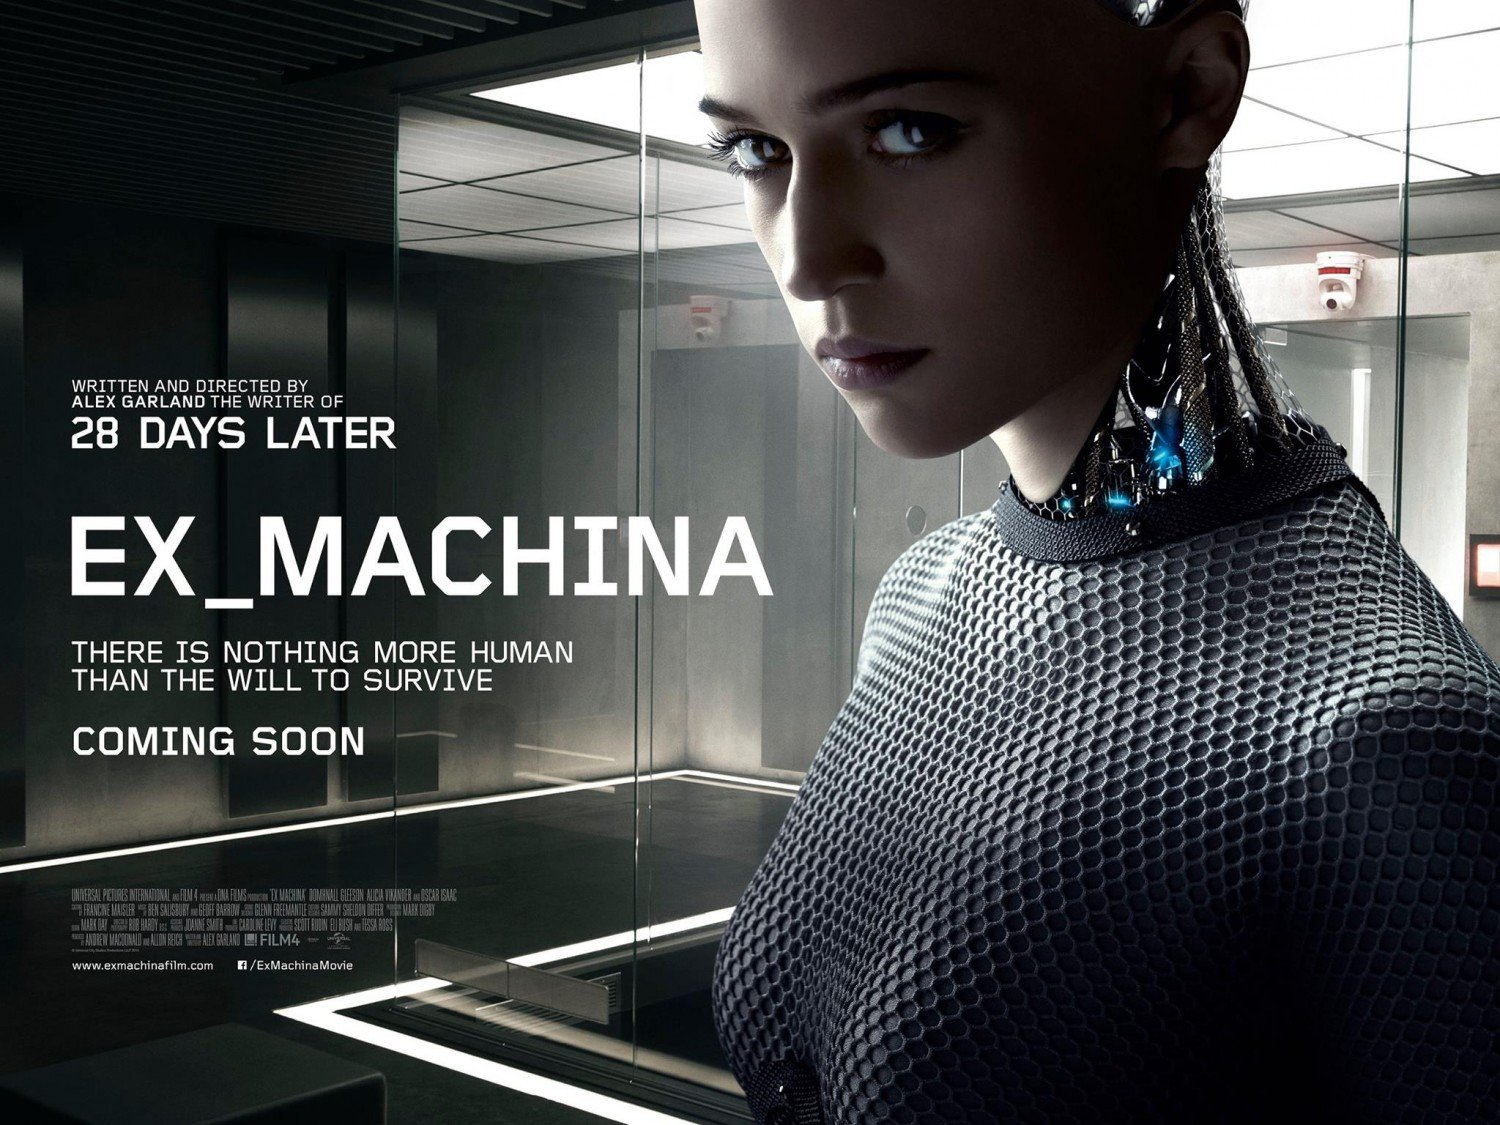 The Future Is Now In Teaser Poster For Alex Garland's Ex Machina